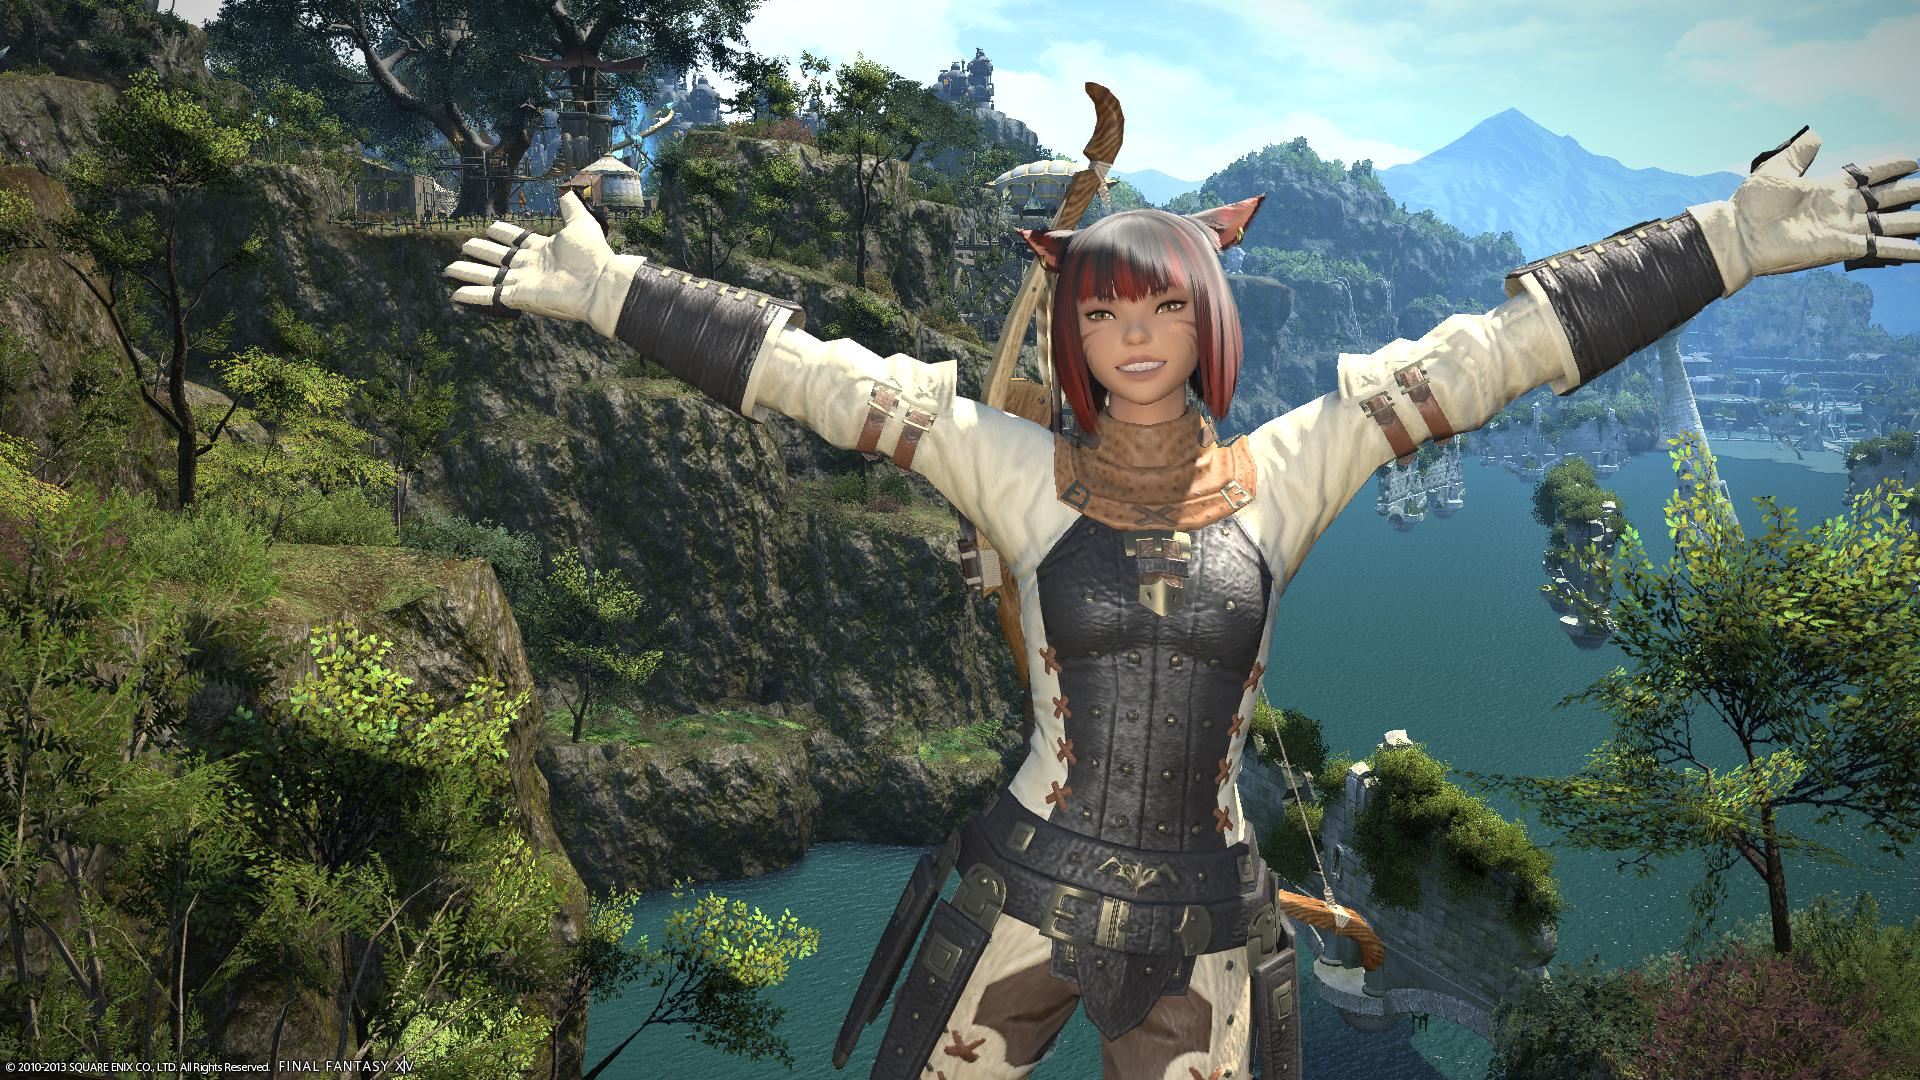 Final Fantasy 14 Free Login Campaign Gives You Up To Four Days Of Free Play VG247